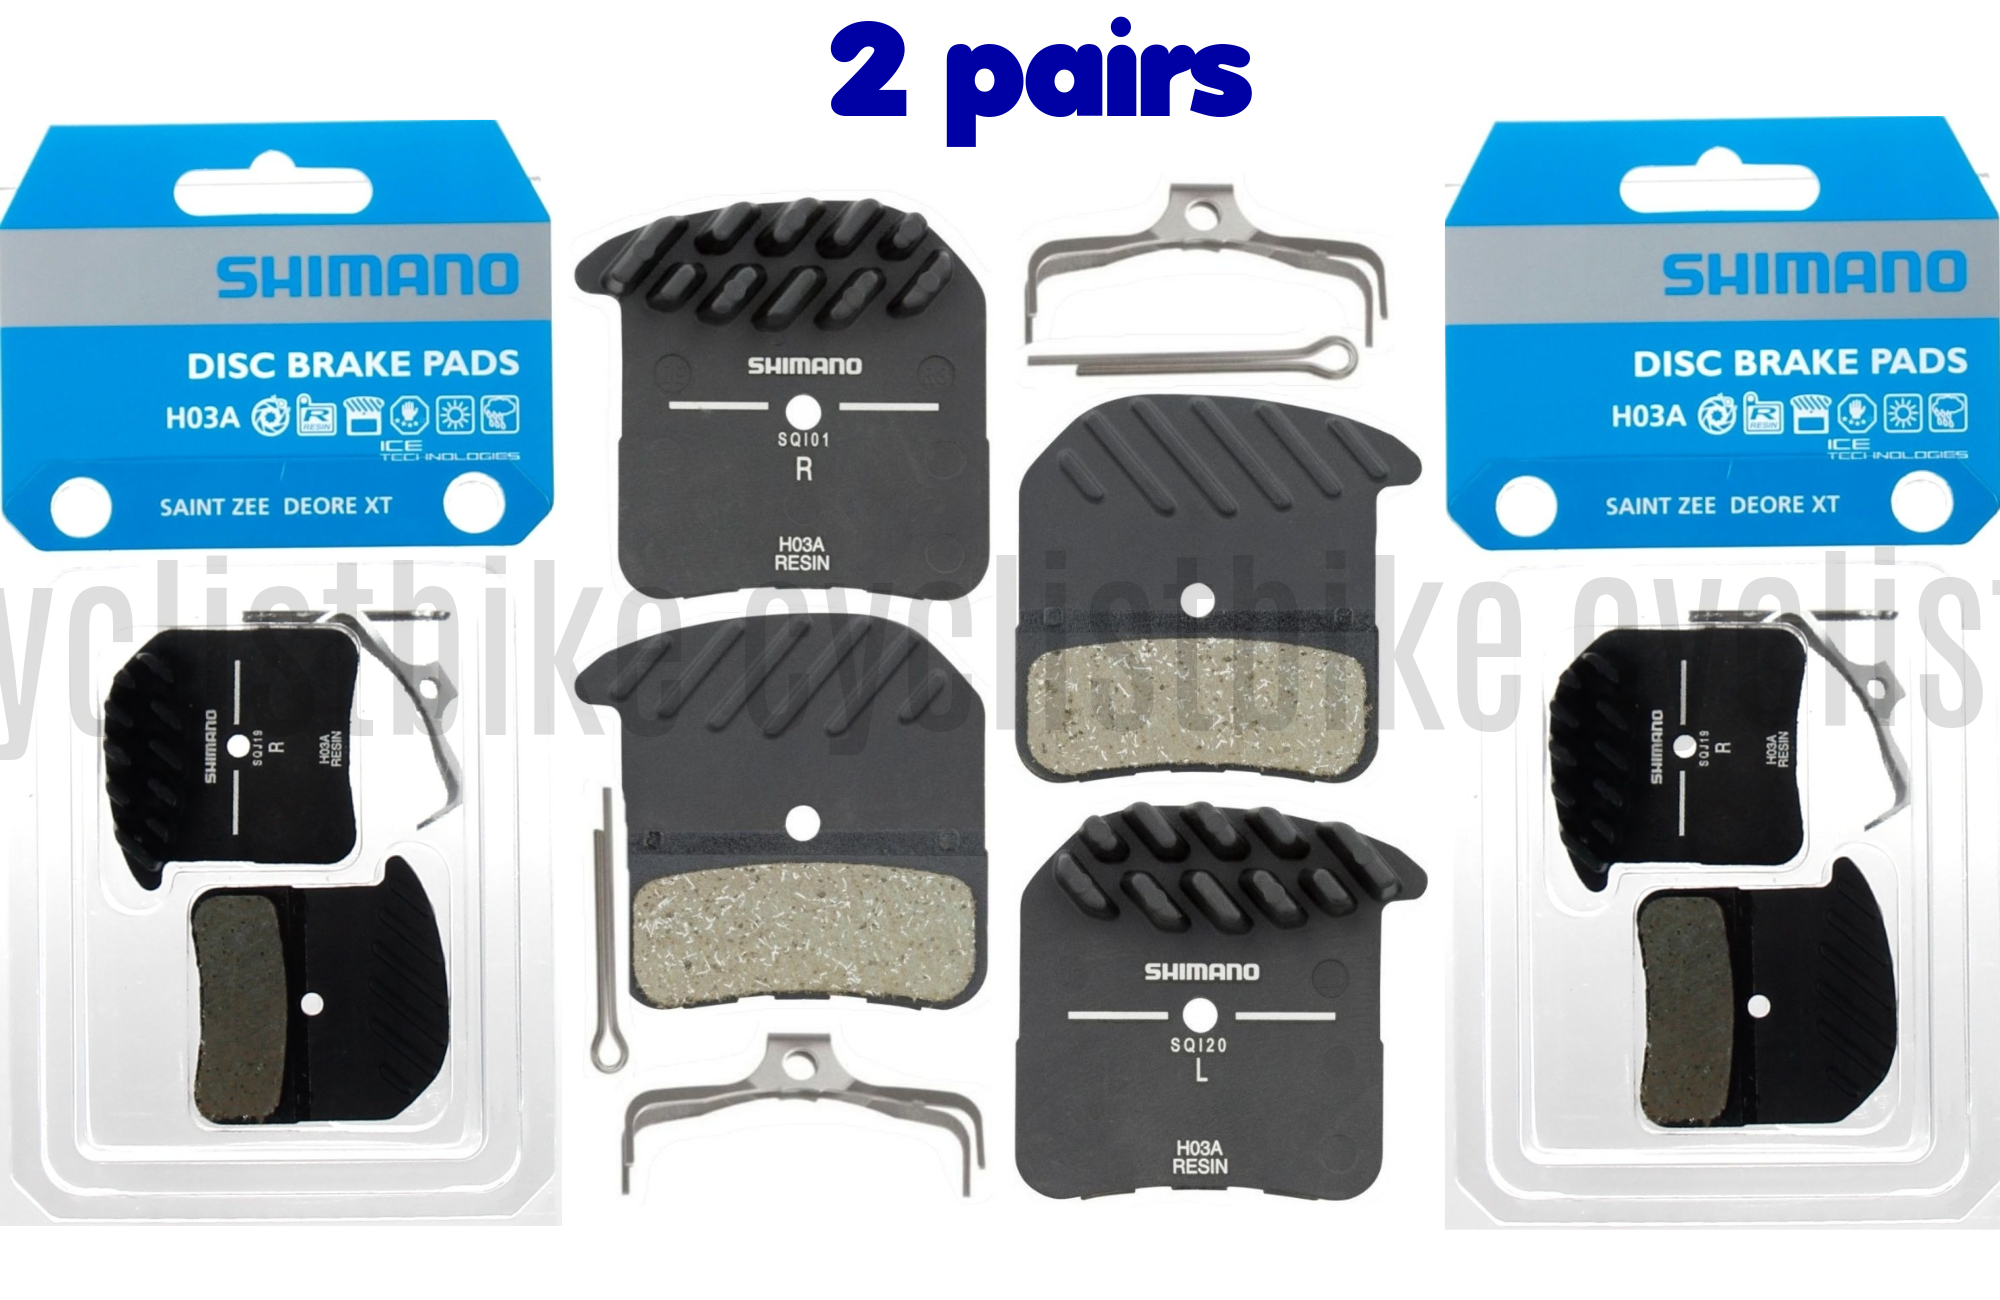 SHIMANO H01A Resin Disc Brake Pad Resin NEW in Card, Shipped from US